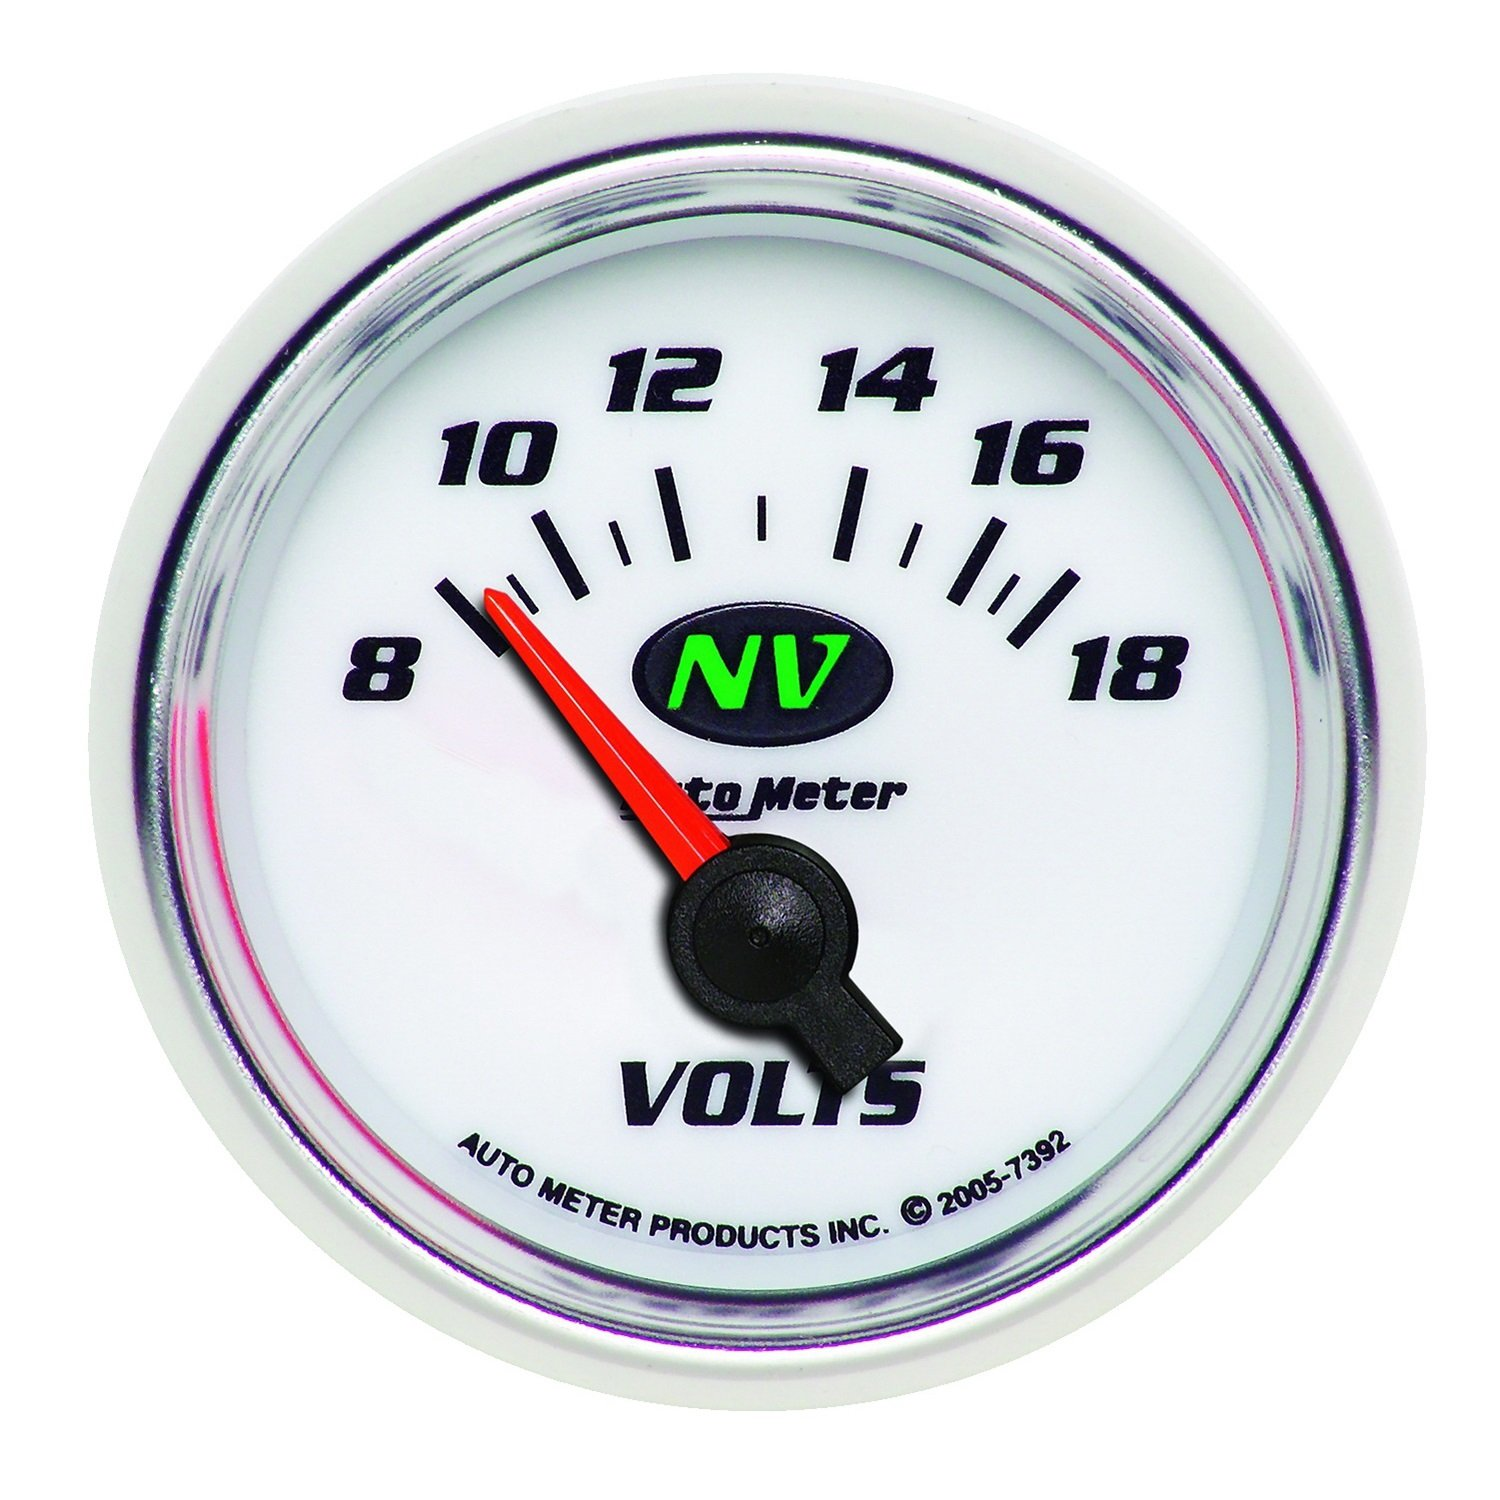 Auto Meter 7392 NV 2-1/16' 8-18V Short Sweep Electric Voltmeter